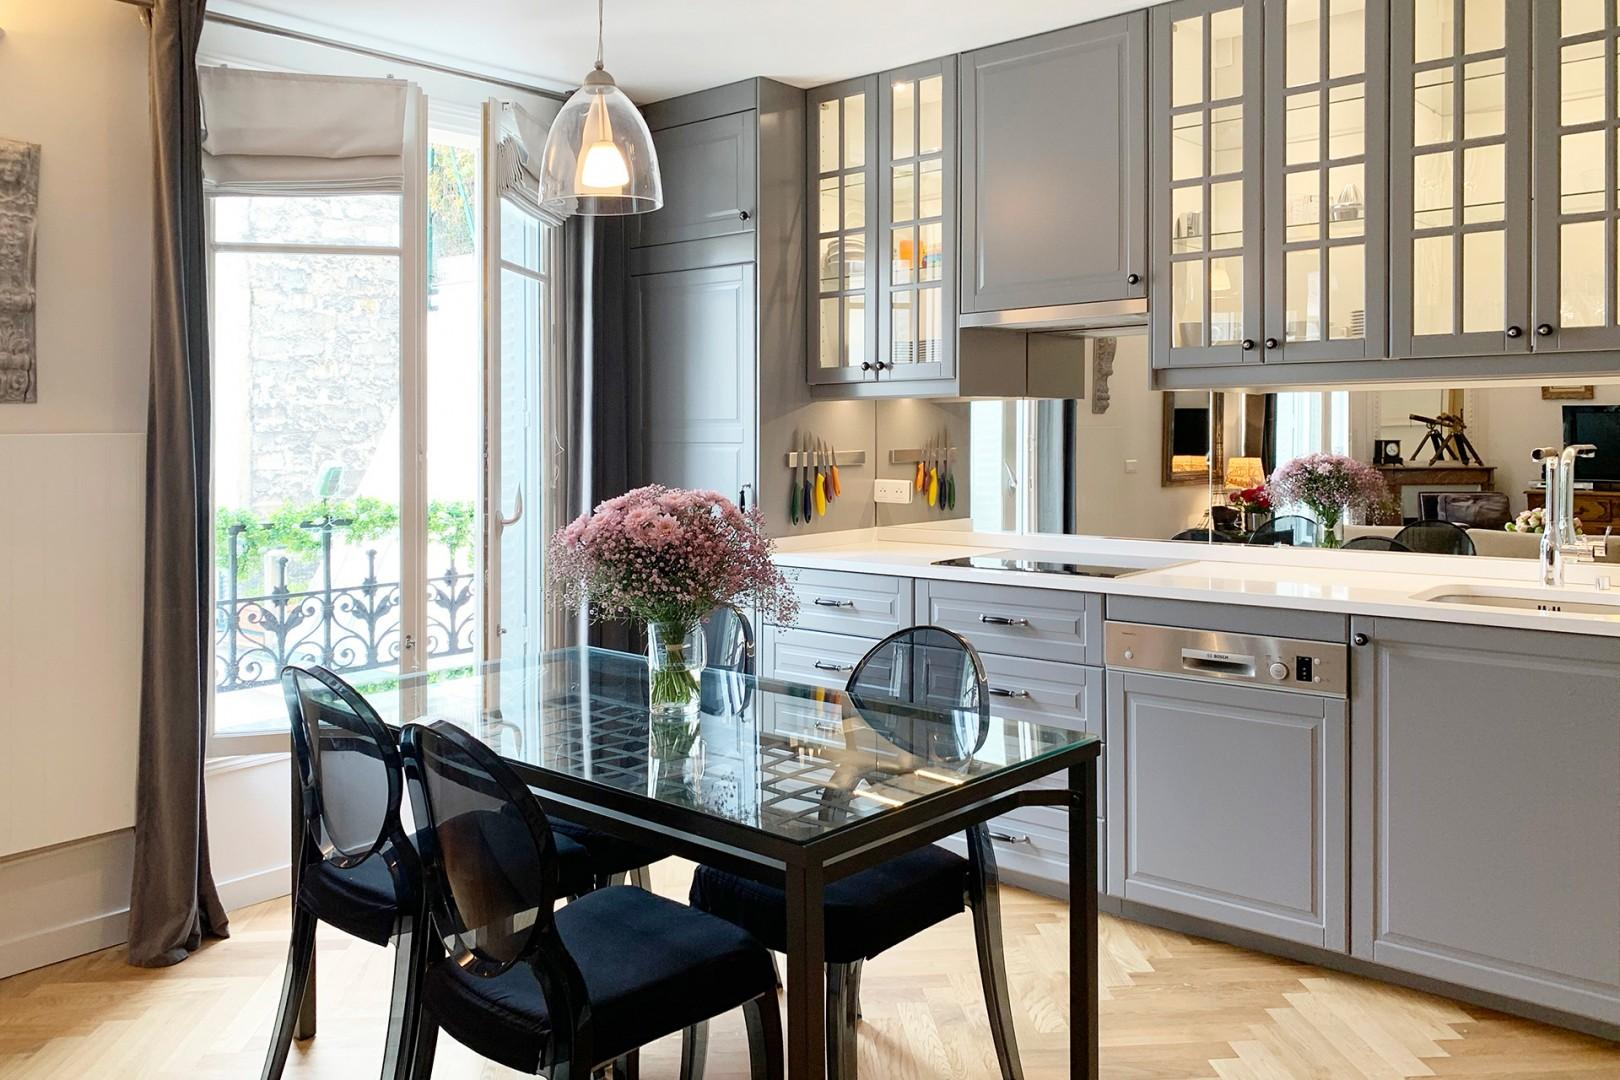 You will love preparing meals in this fully equipped, modern kitchen.